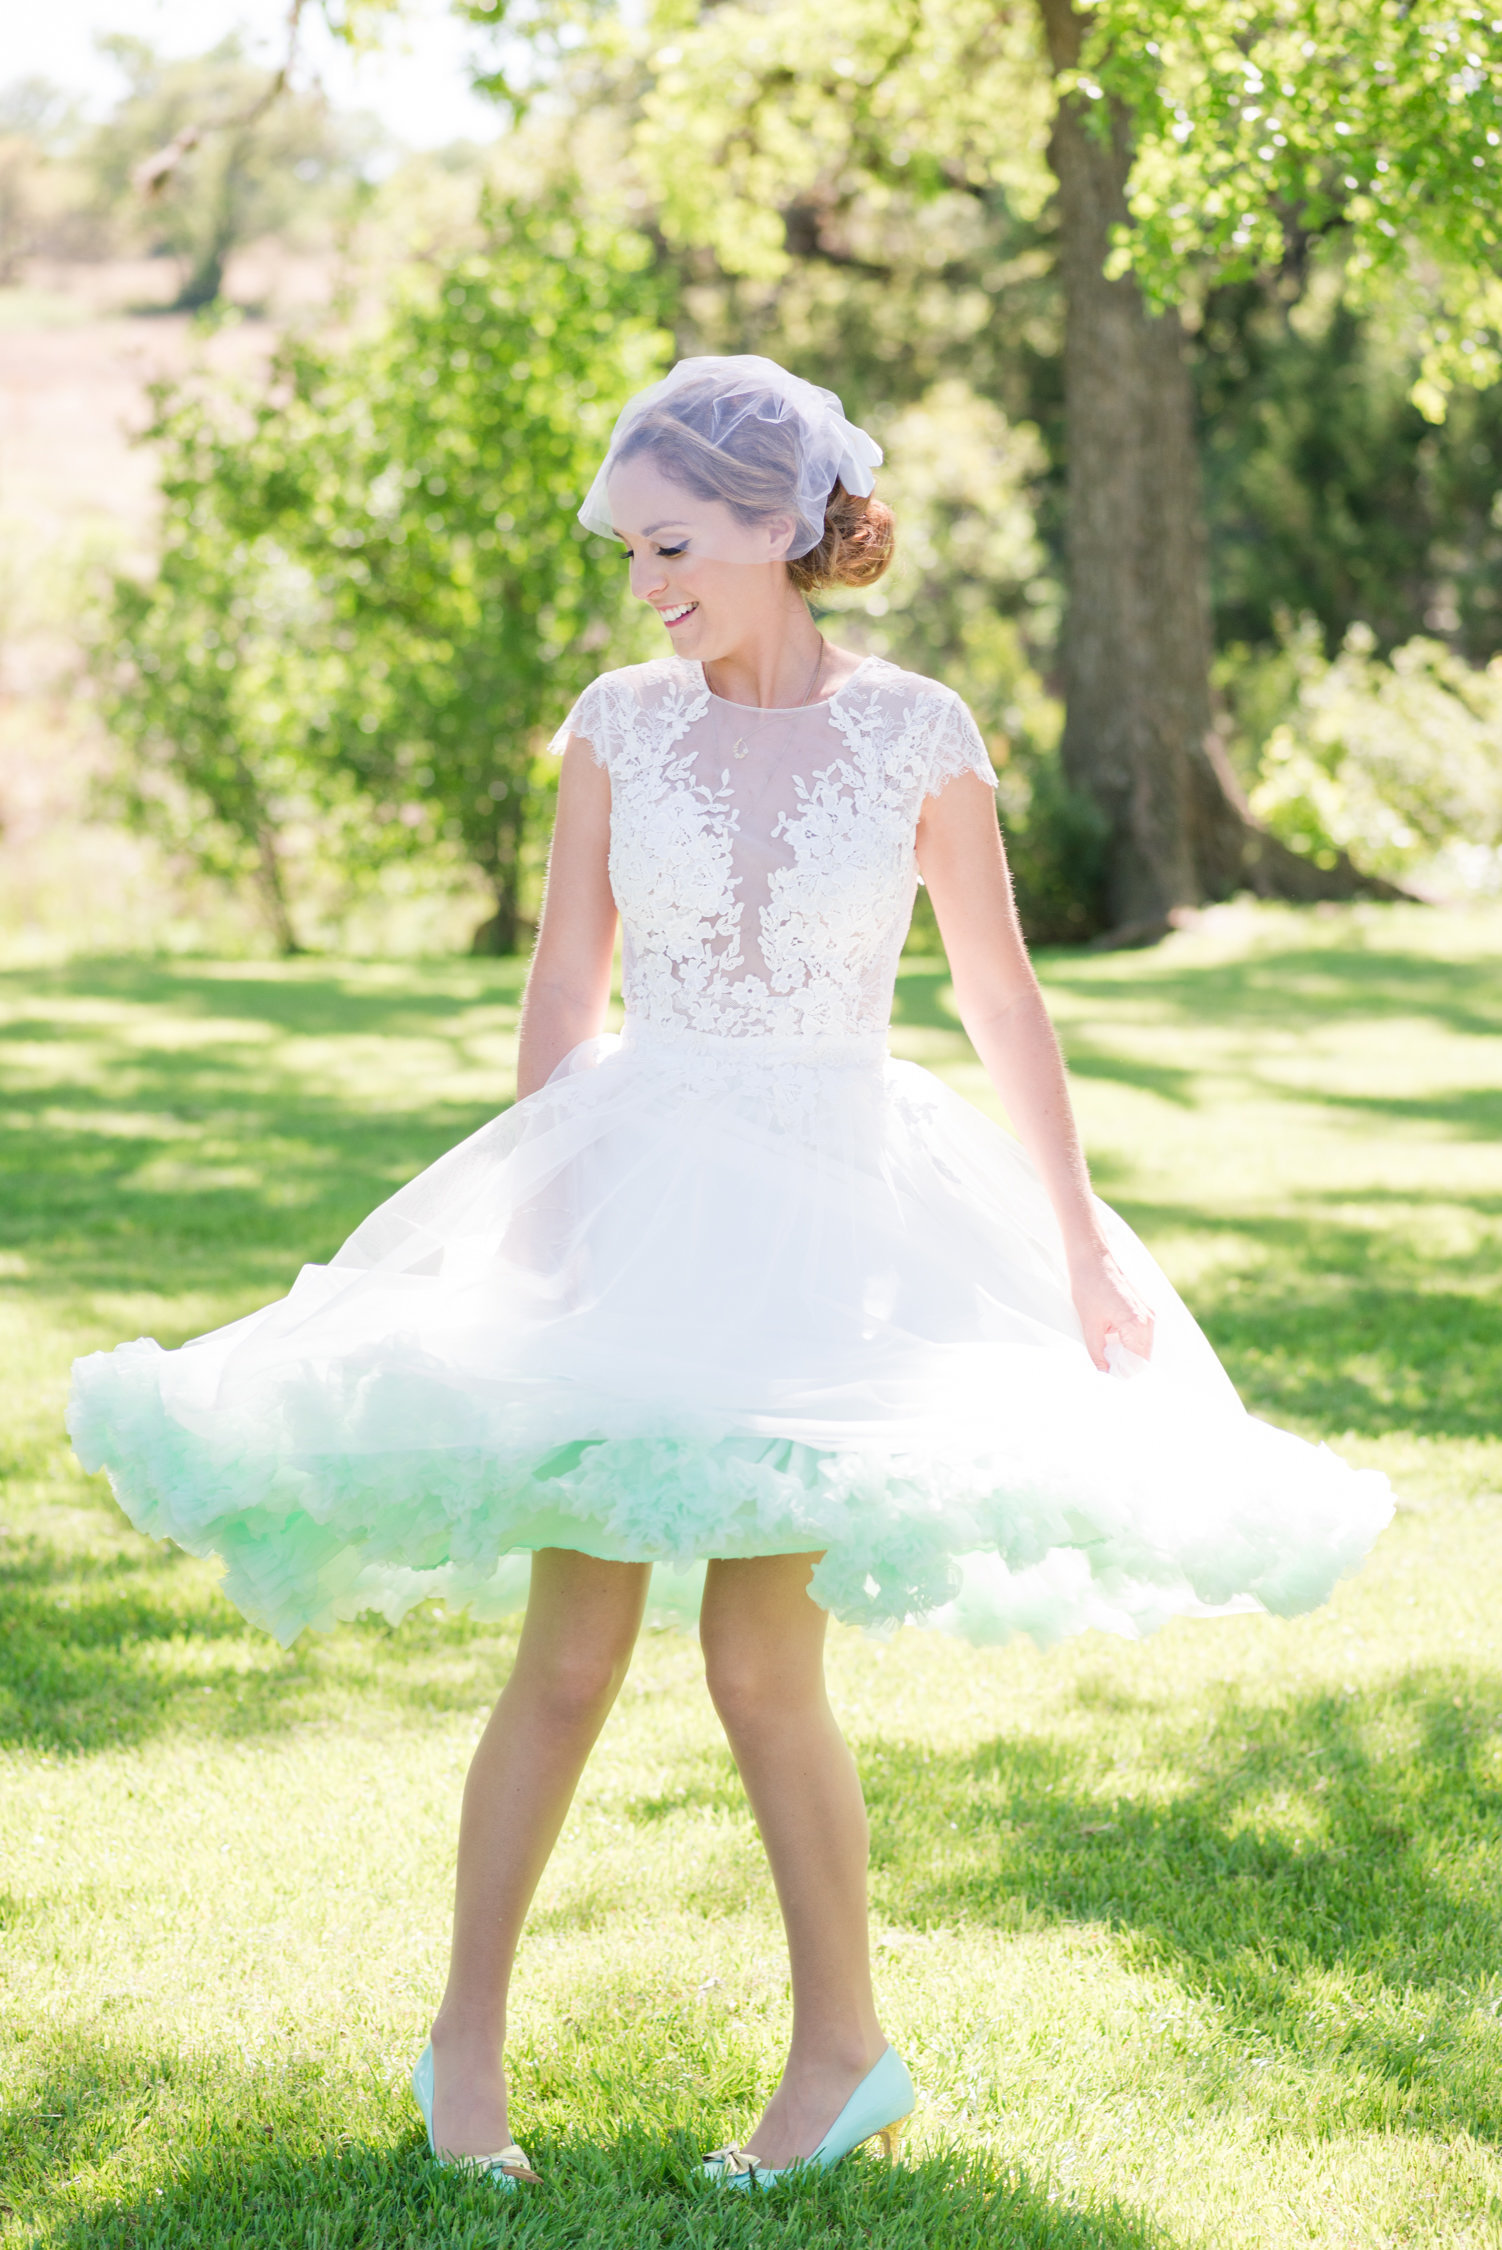 Pecan Springs Ranch Bridal Portrait: Vintage Wedding Dress with Mint Petticoat